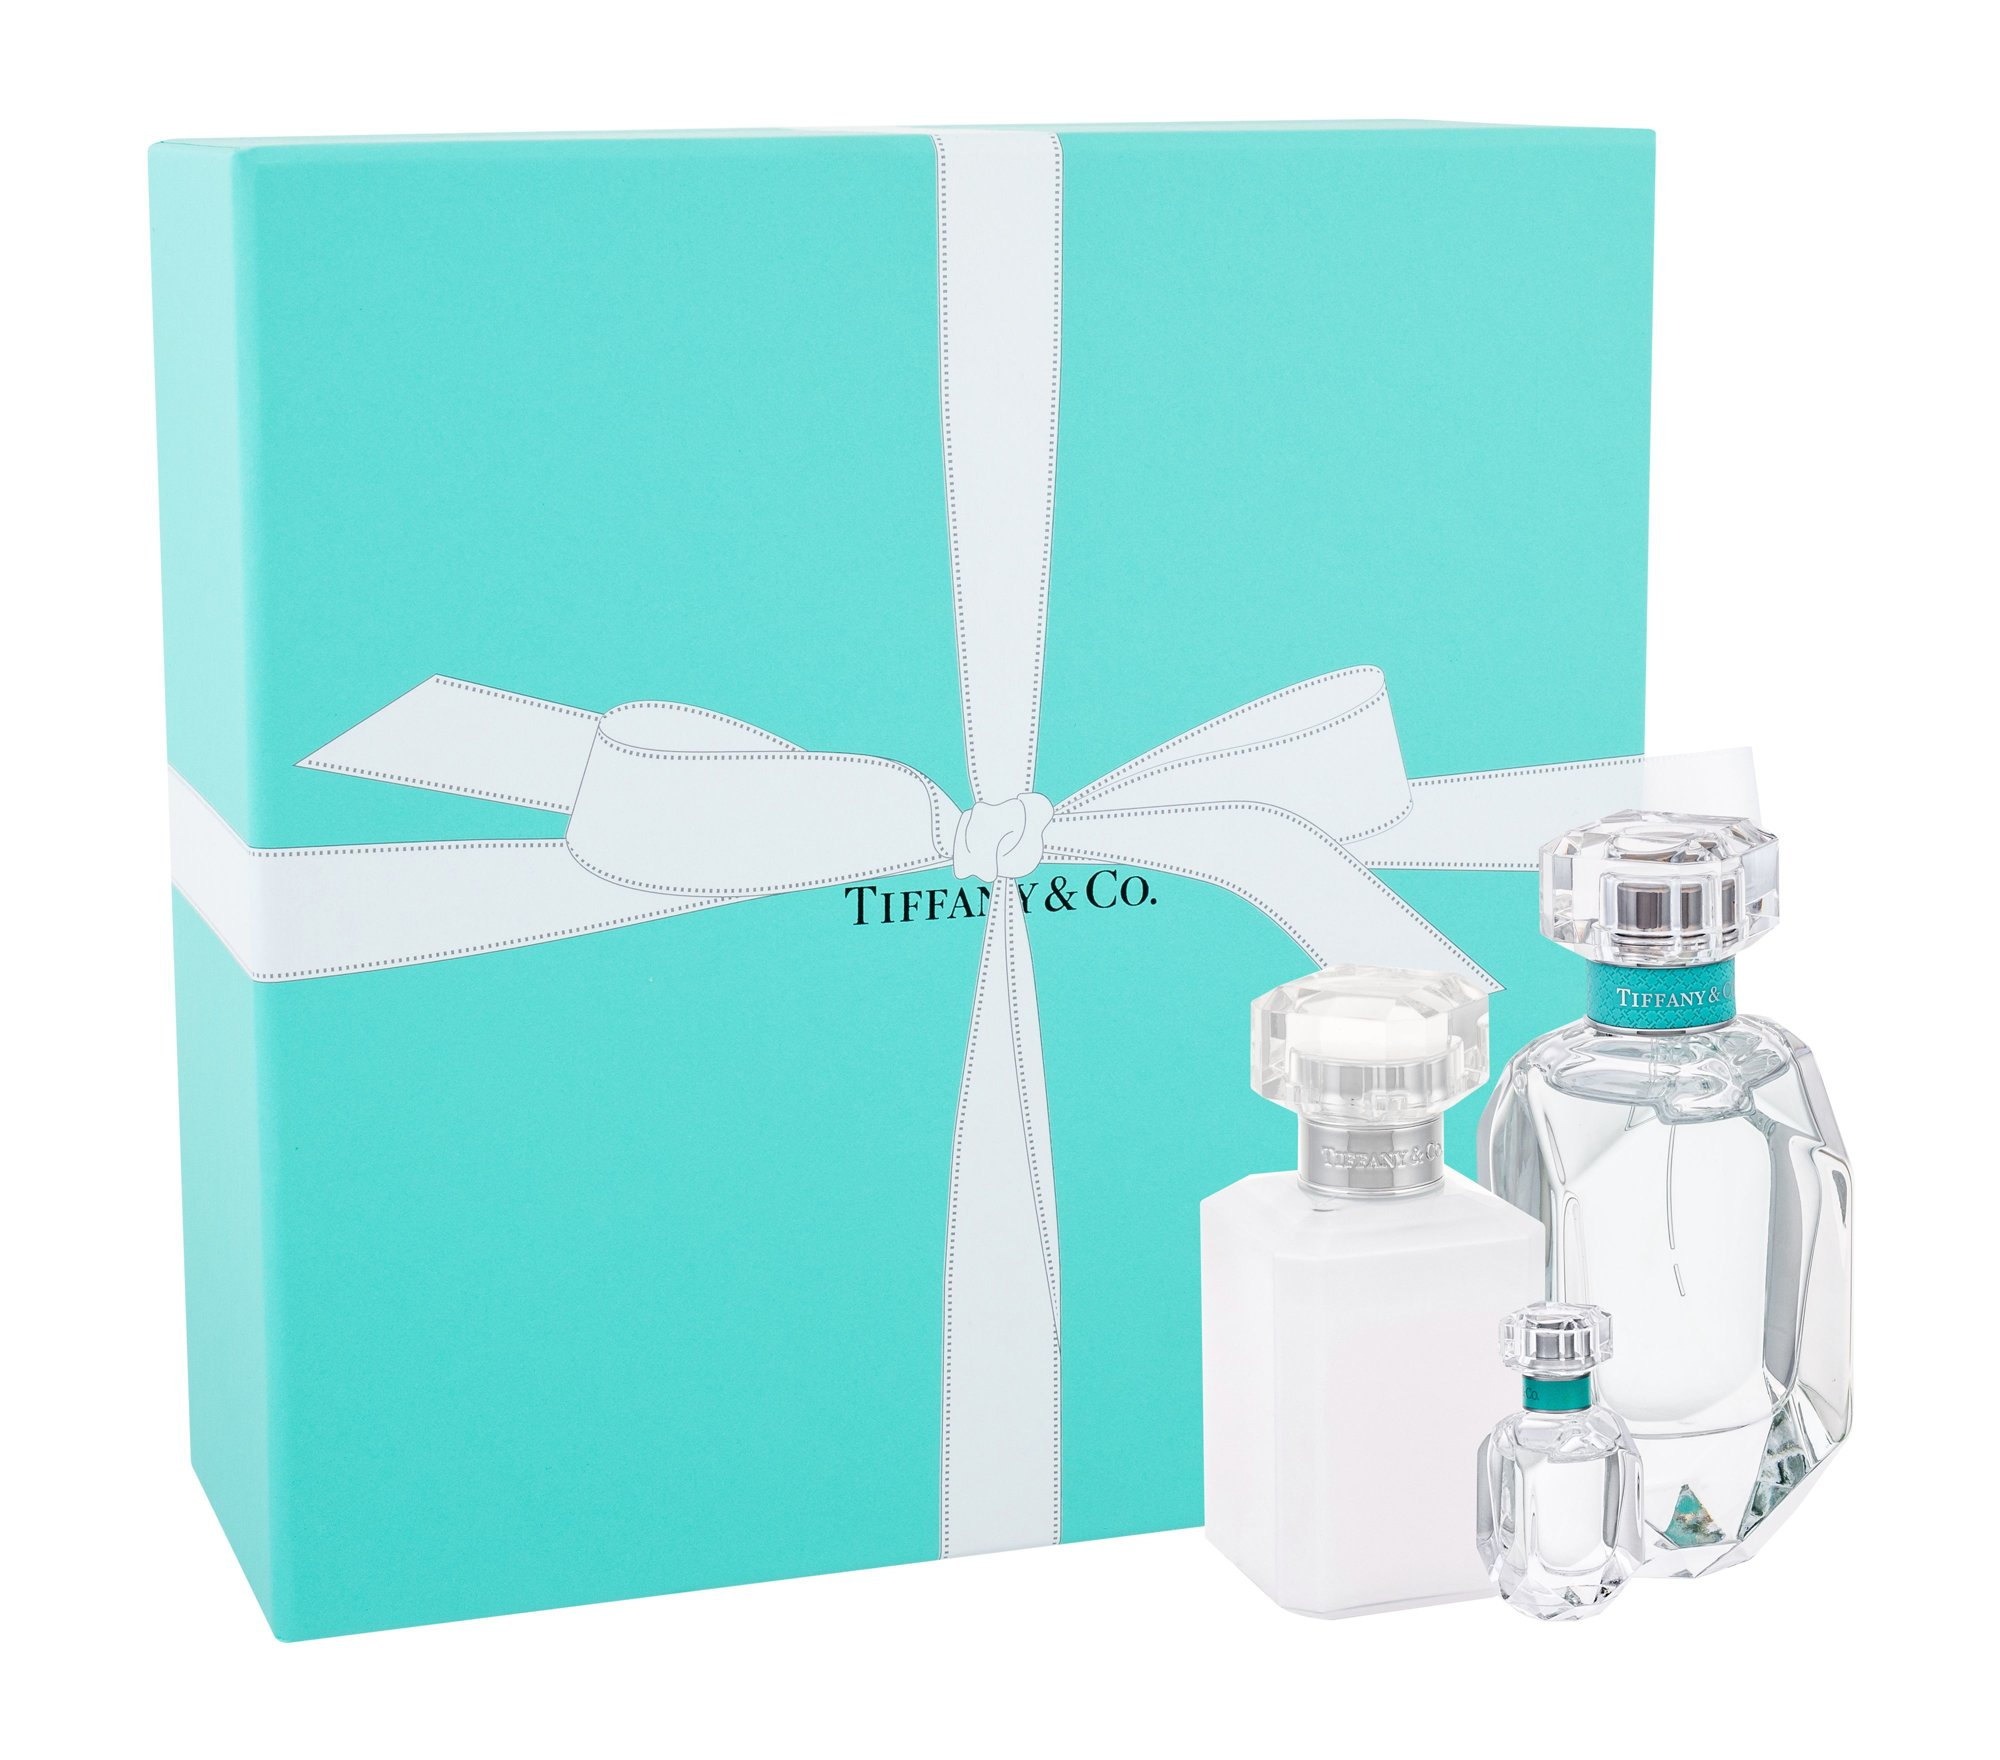 Tiffany & Co. Tiffany & Co. Eau de Parfum 75ml